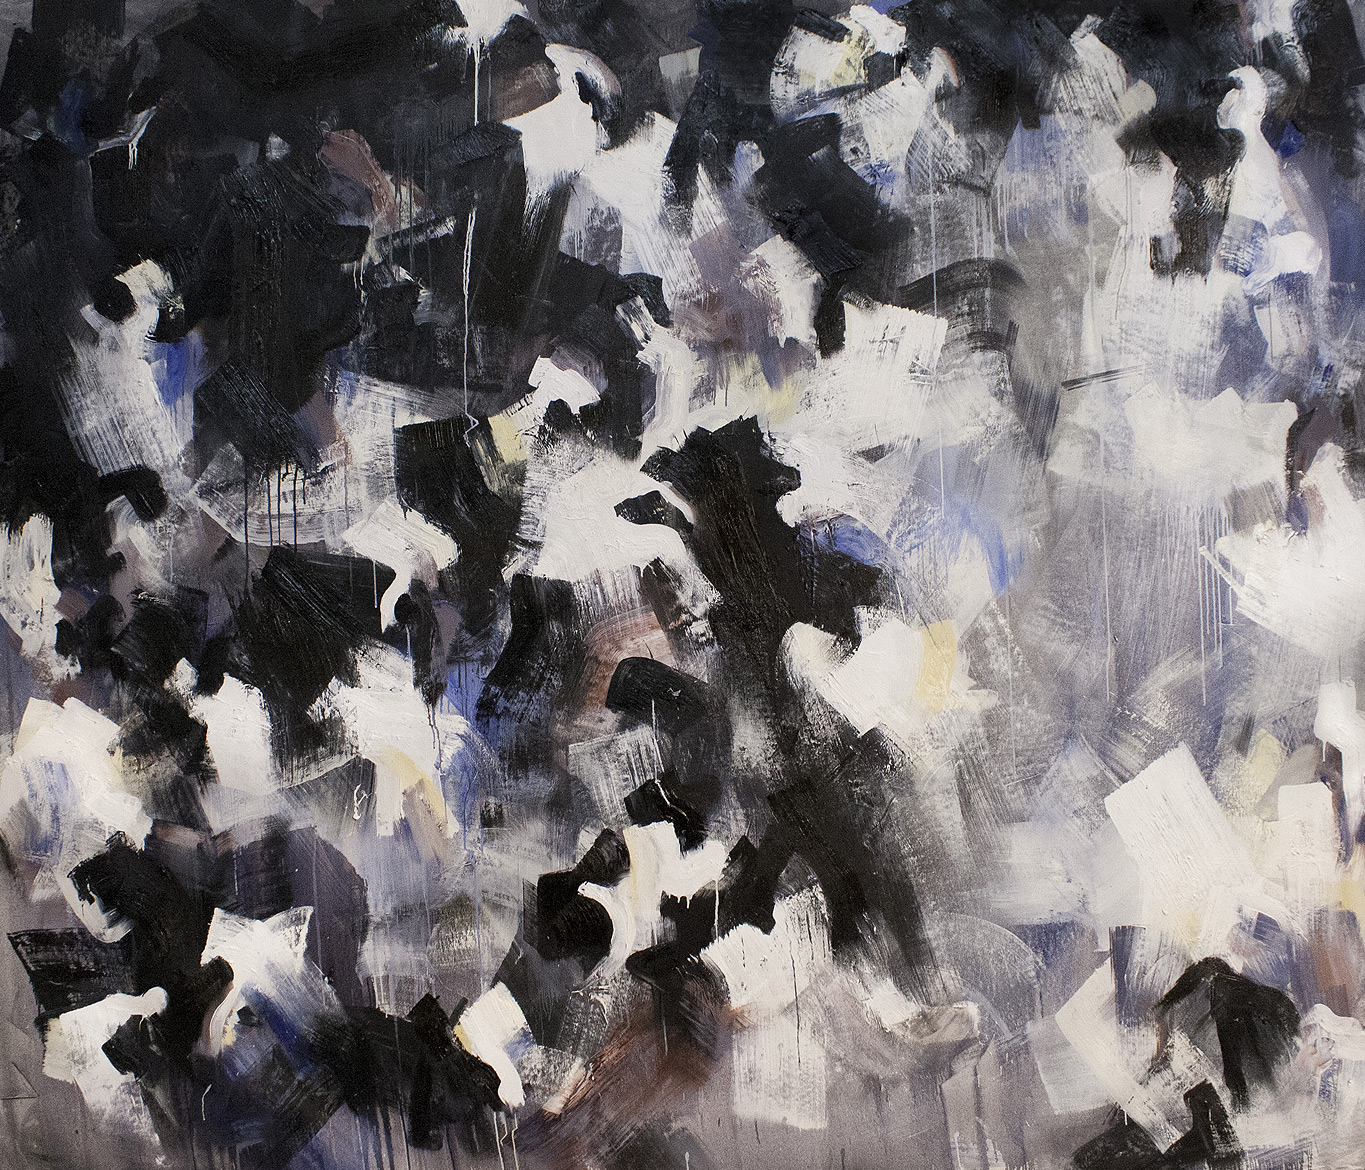 Brut #6 Oil on Canvas • 205 x 255 cm • 2014